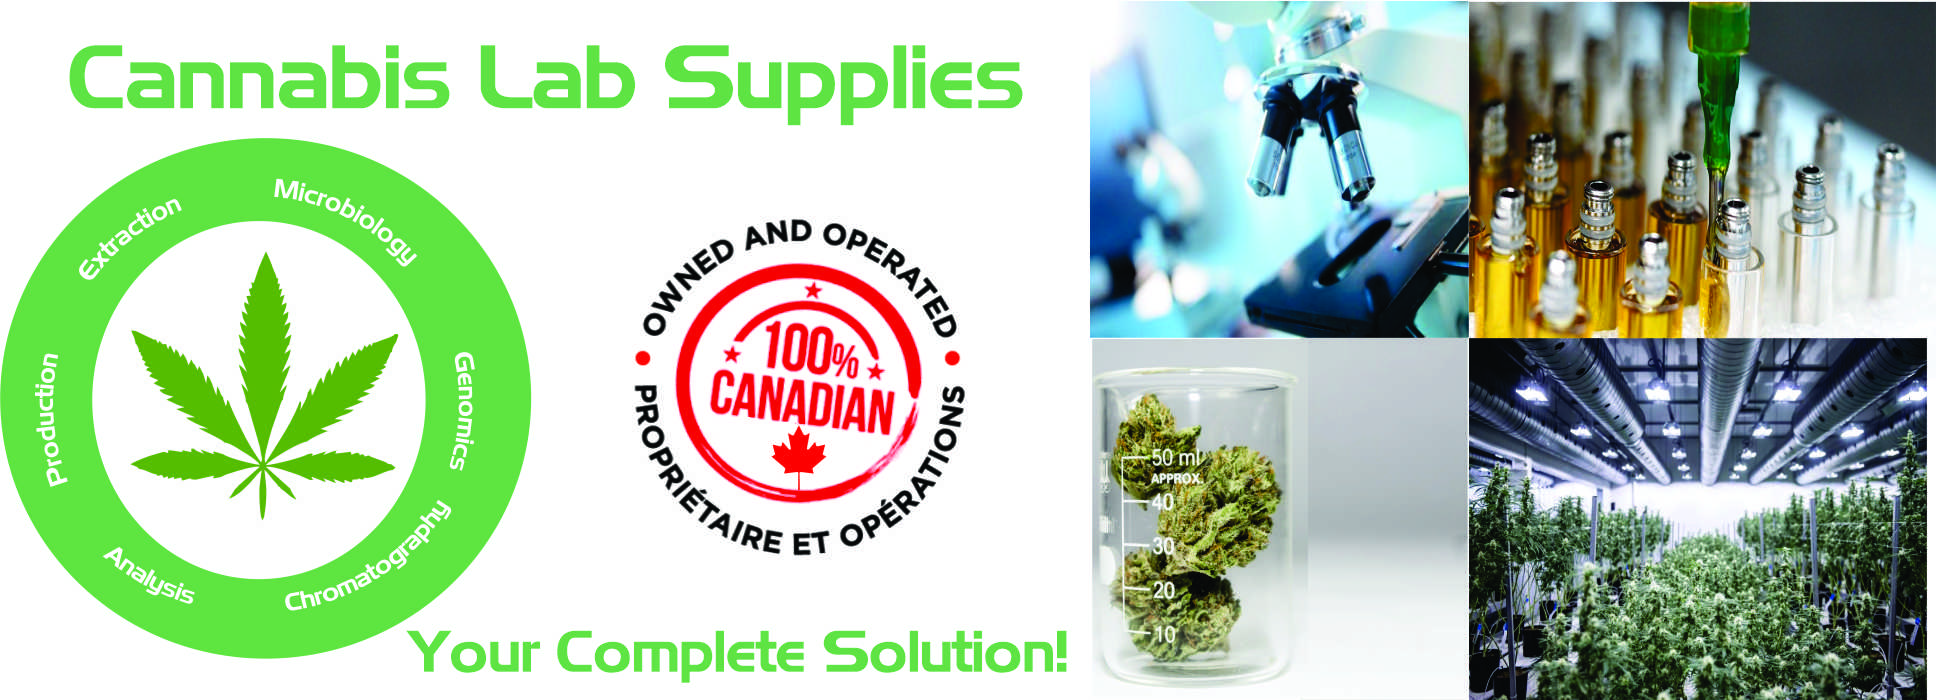 Cannabis Lab Supplies